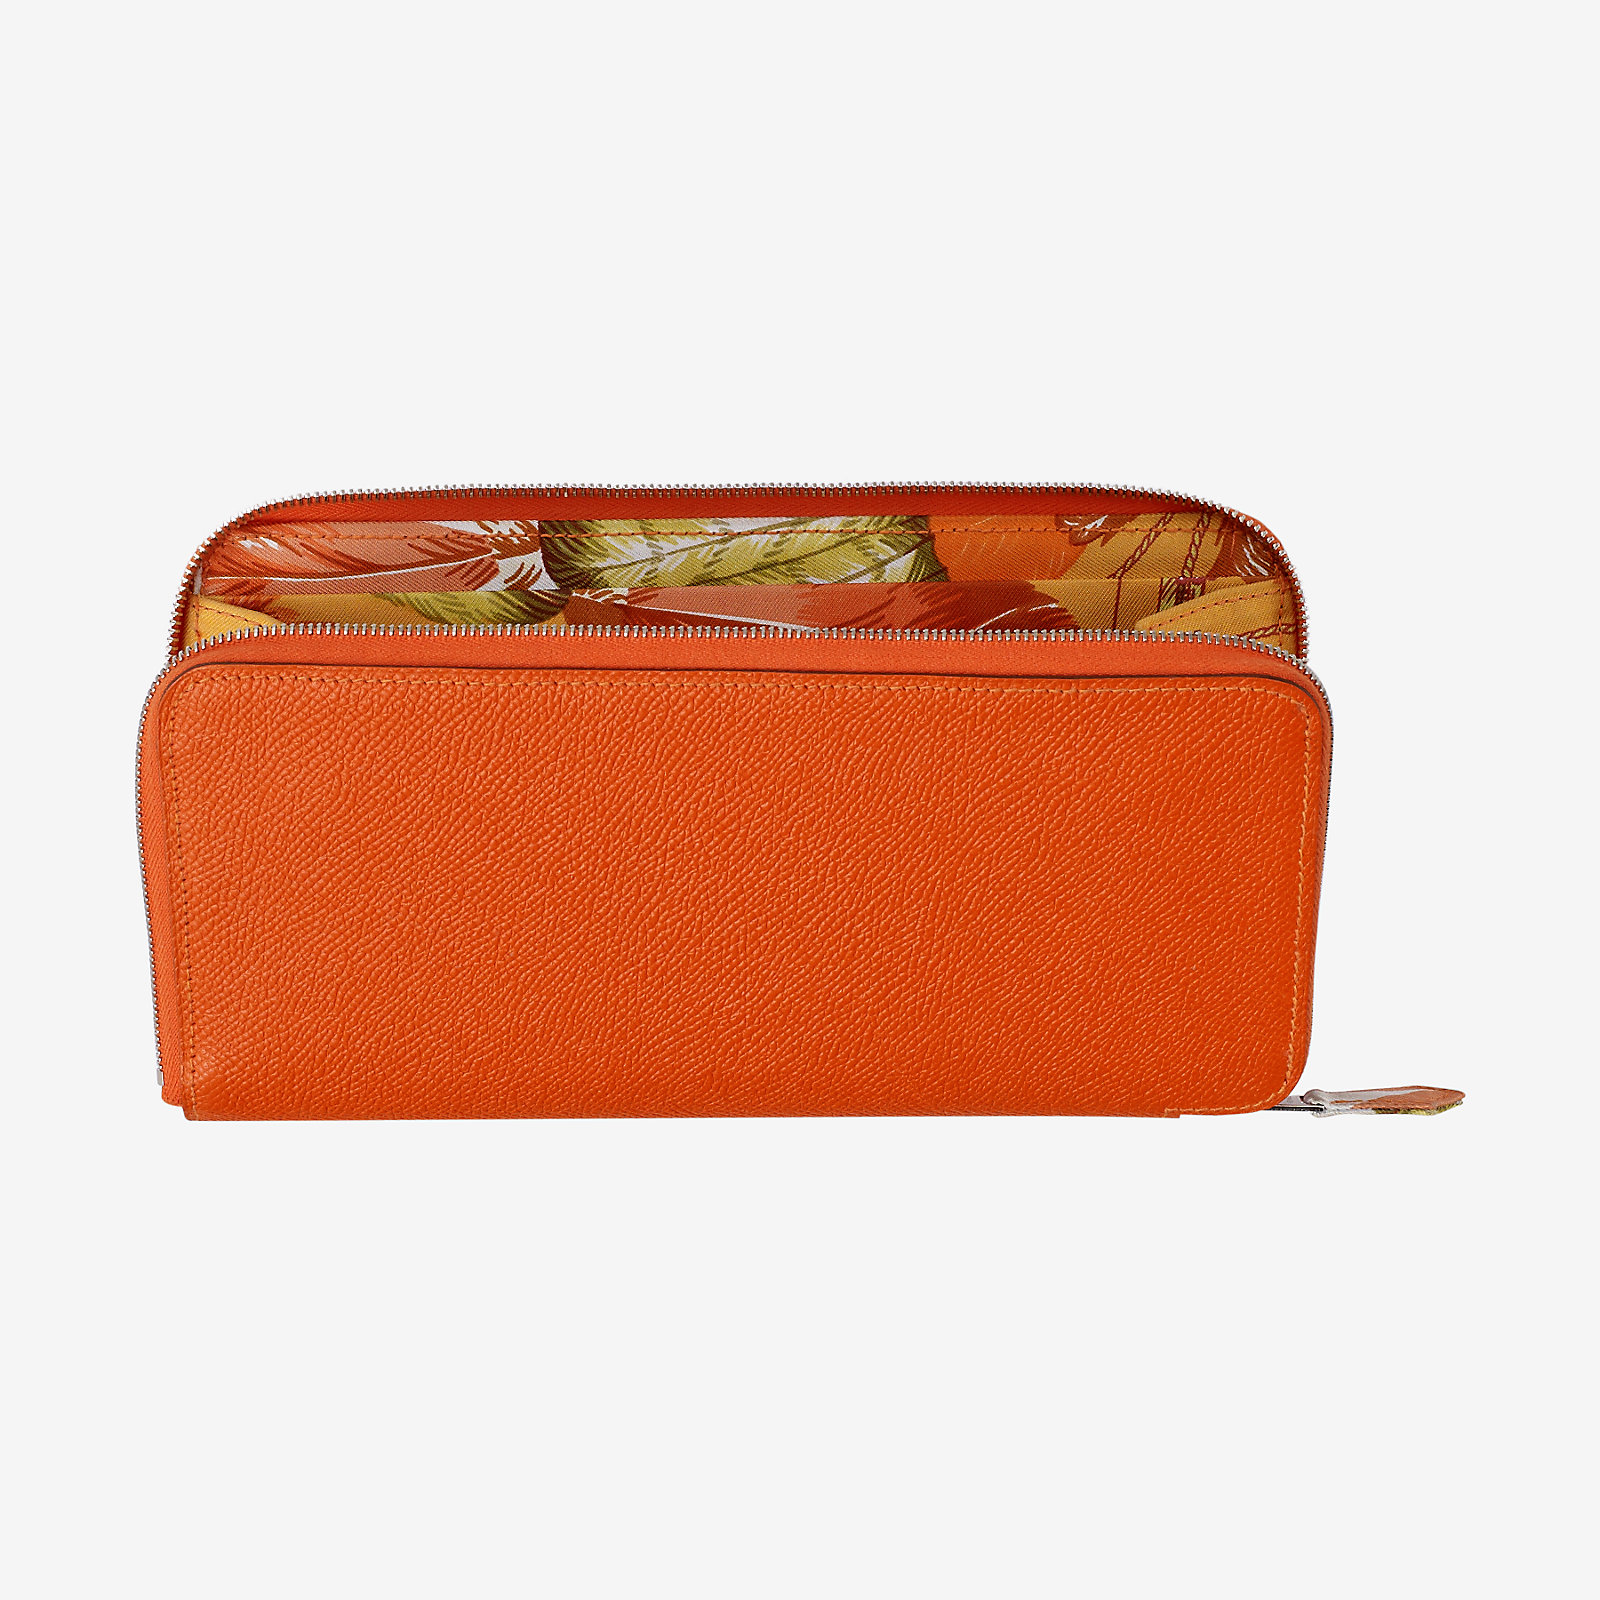 silk-in-classic-wallet-large-mode